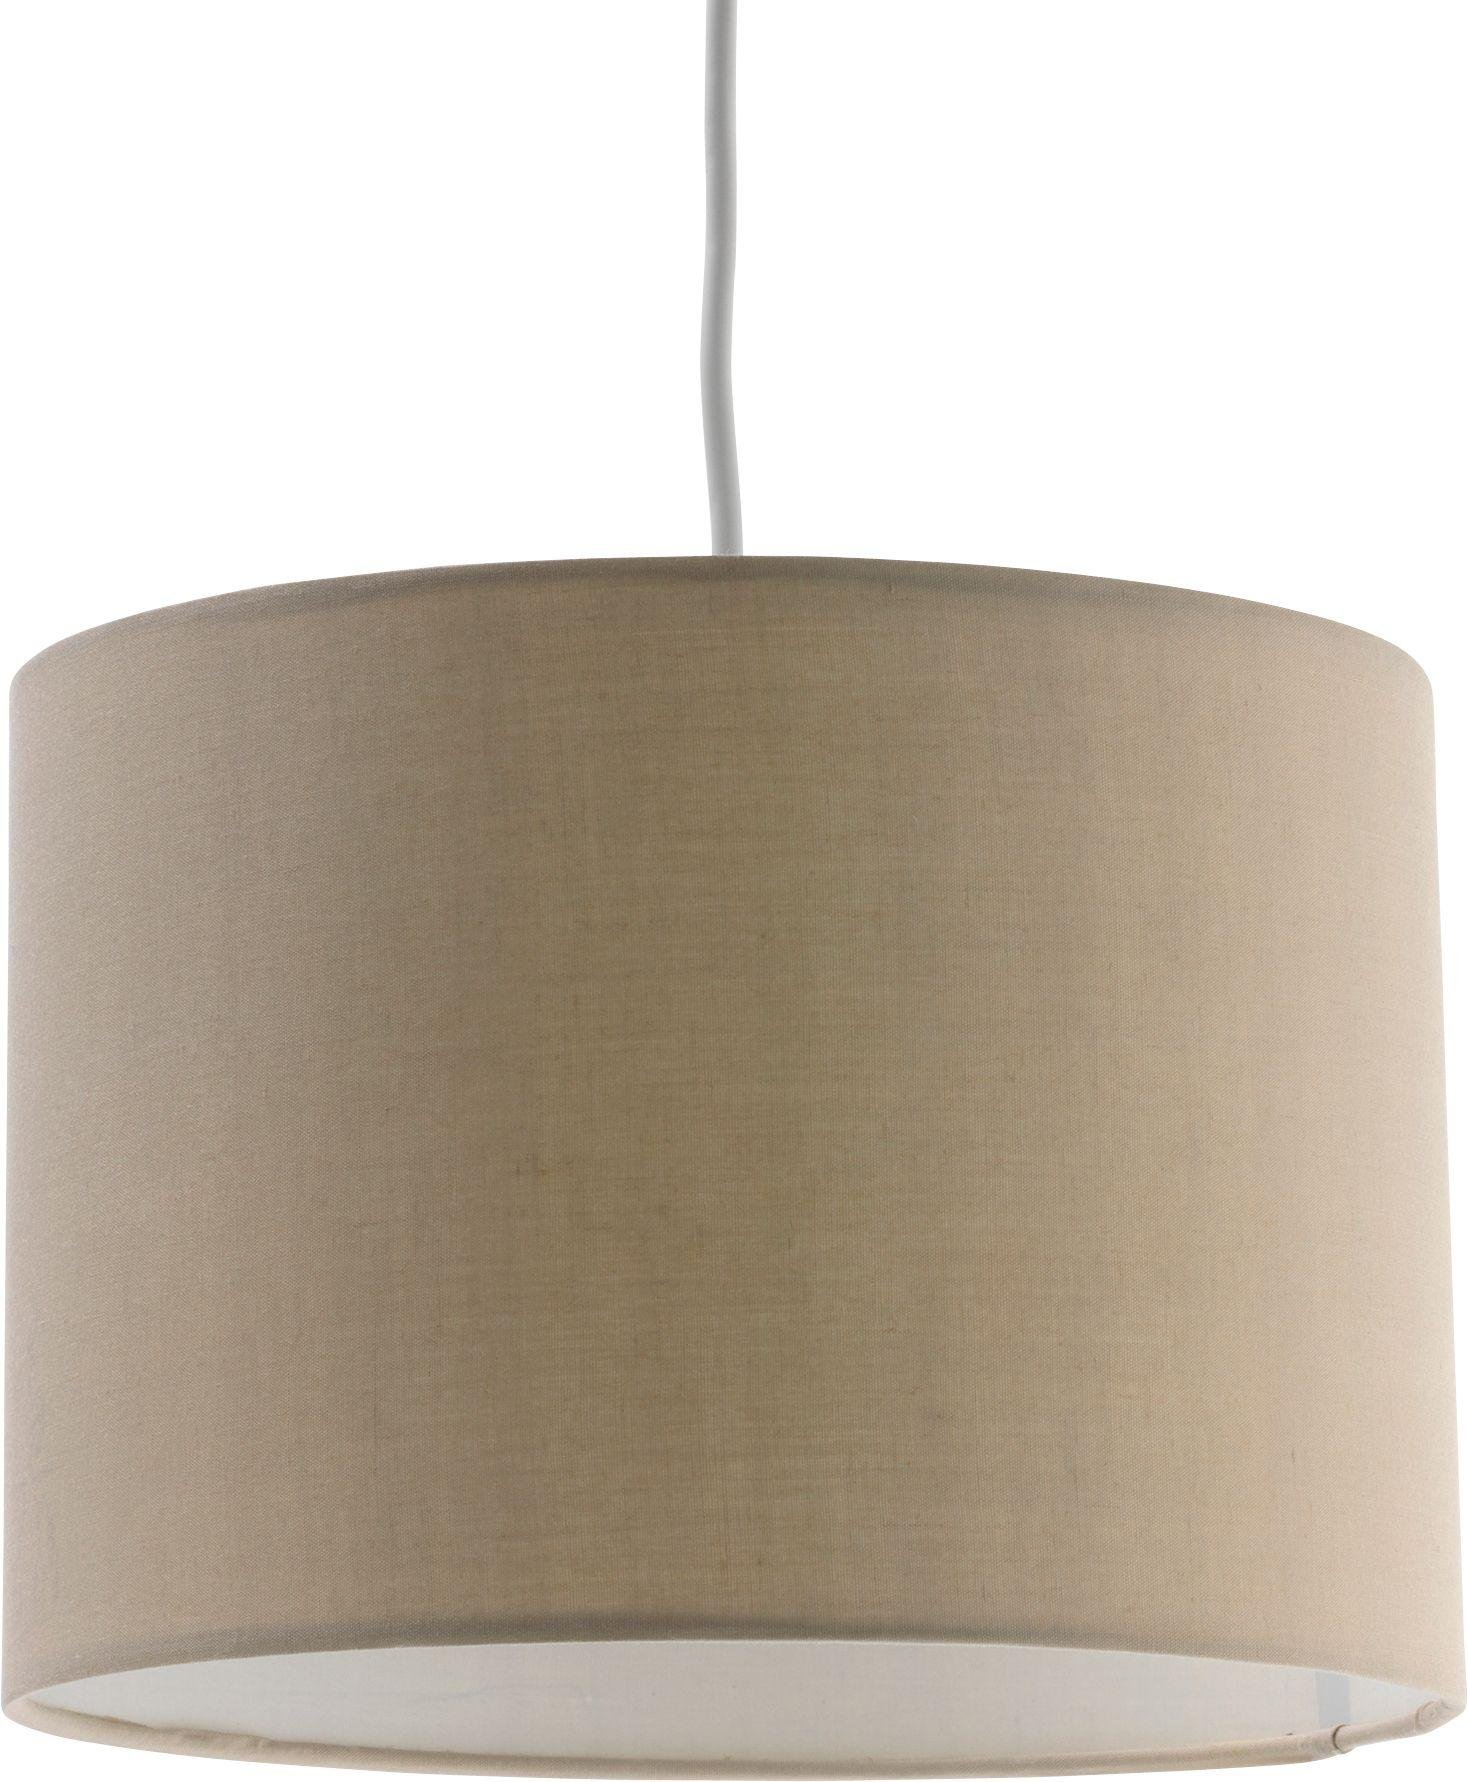 Marvelous HOME Fabric Light Shade   Cafe Mocha